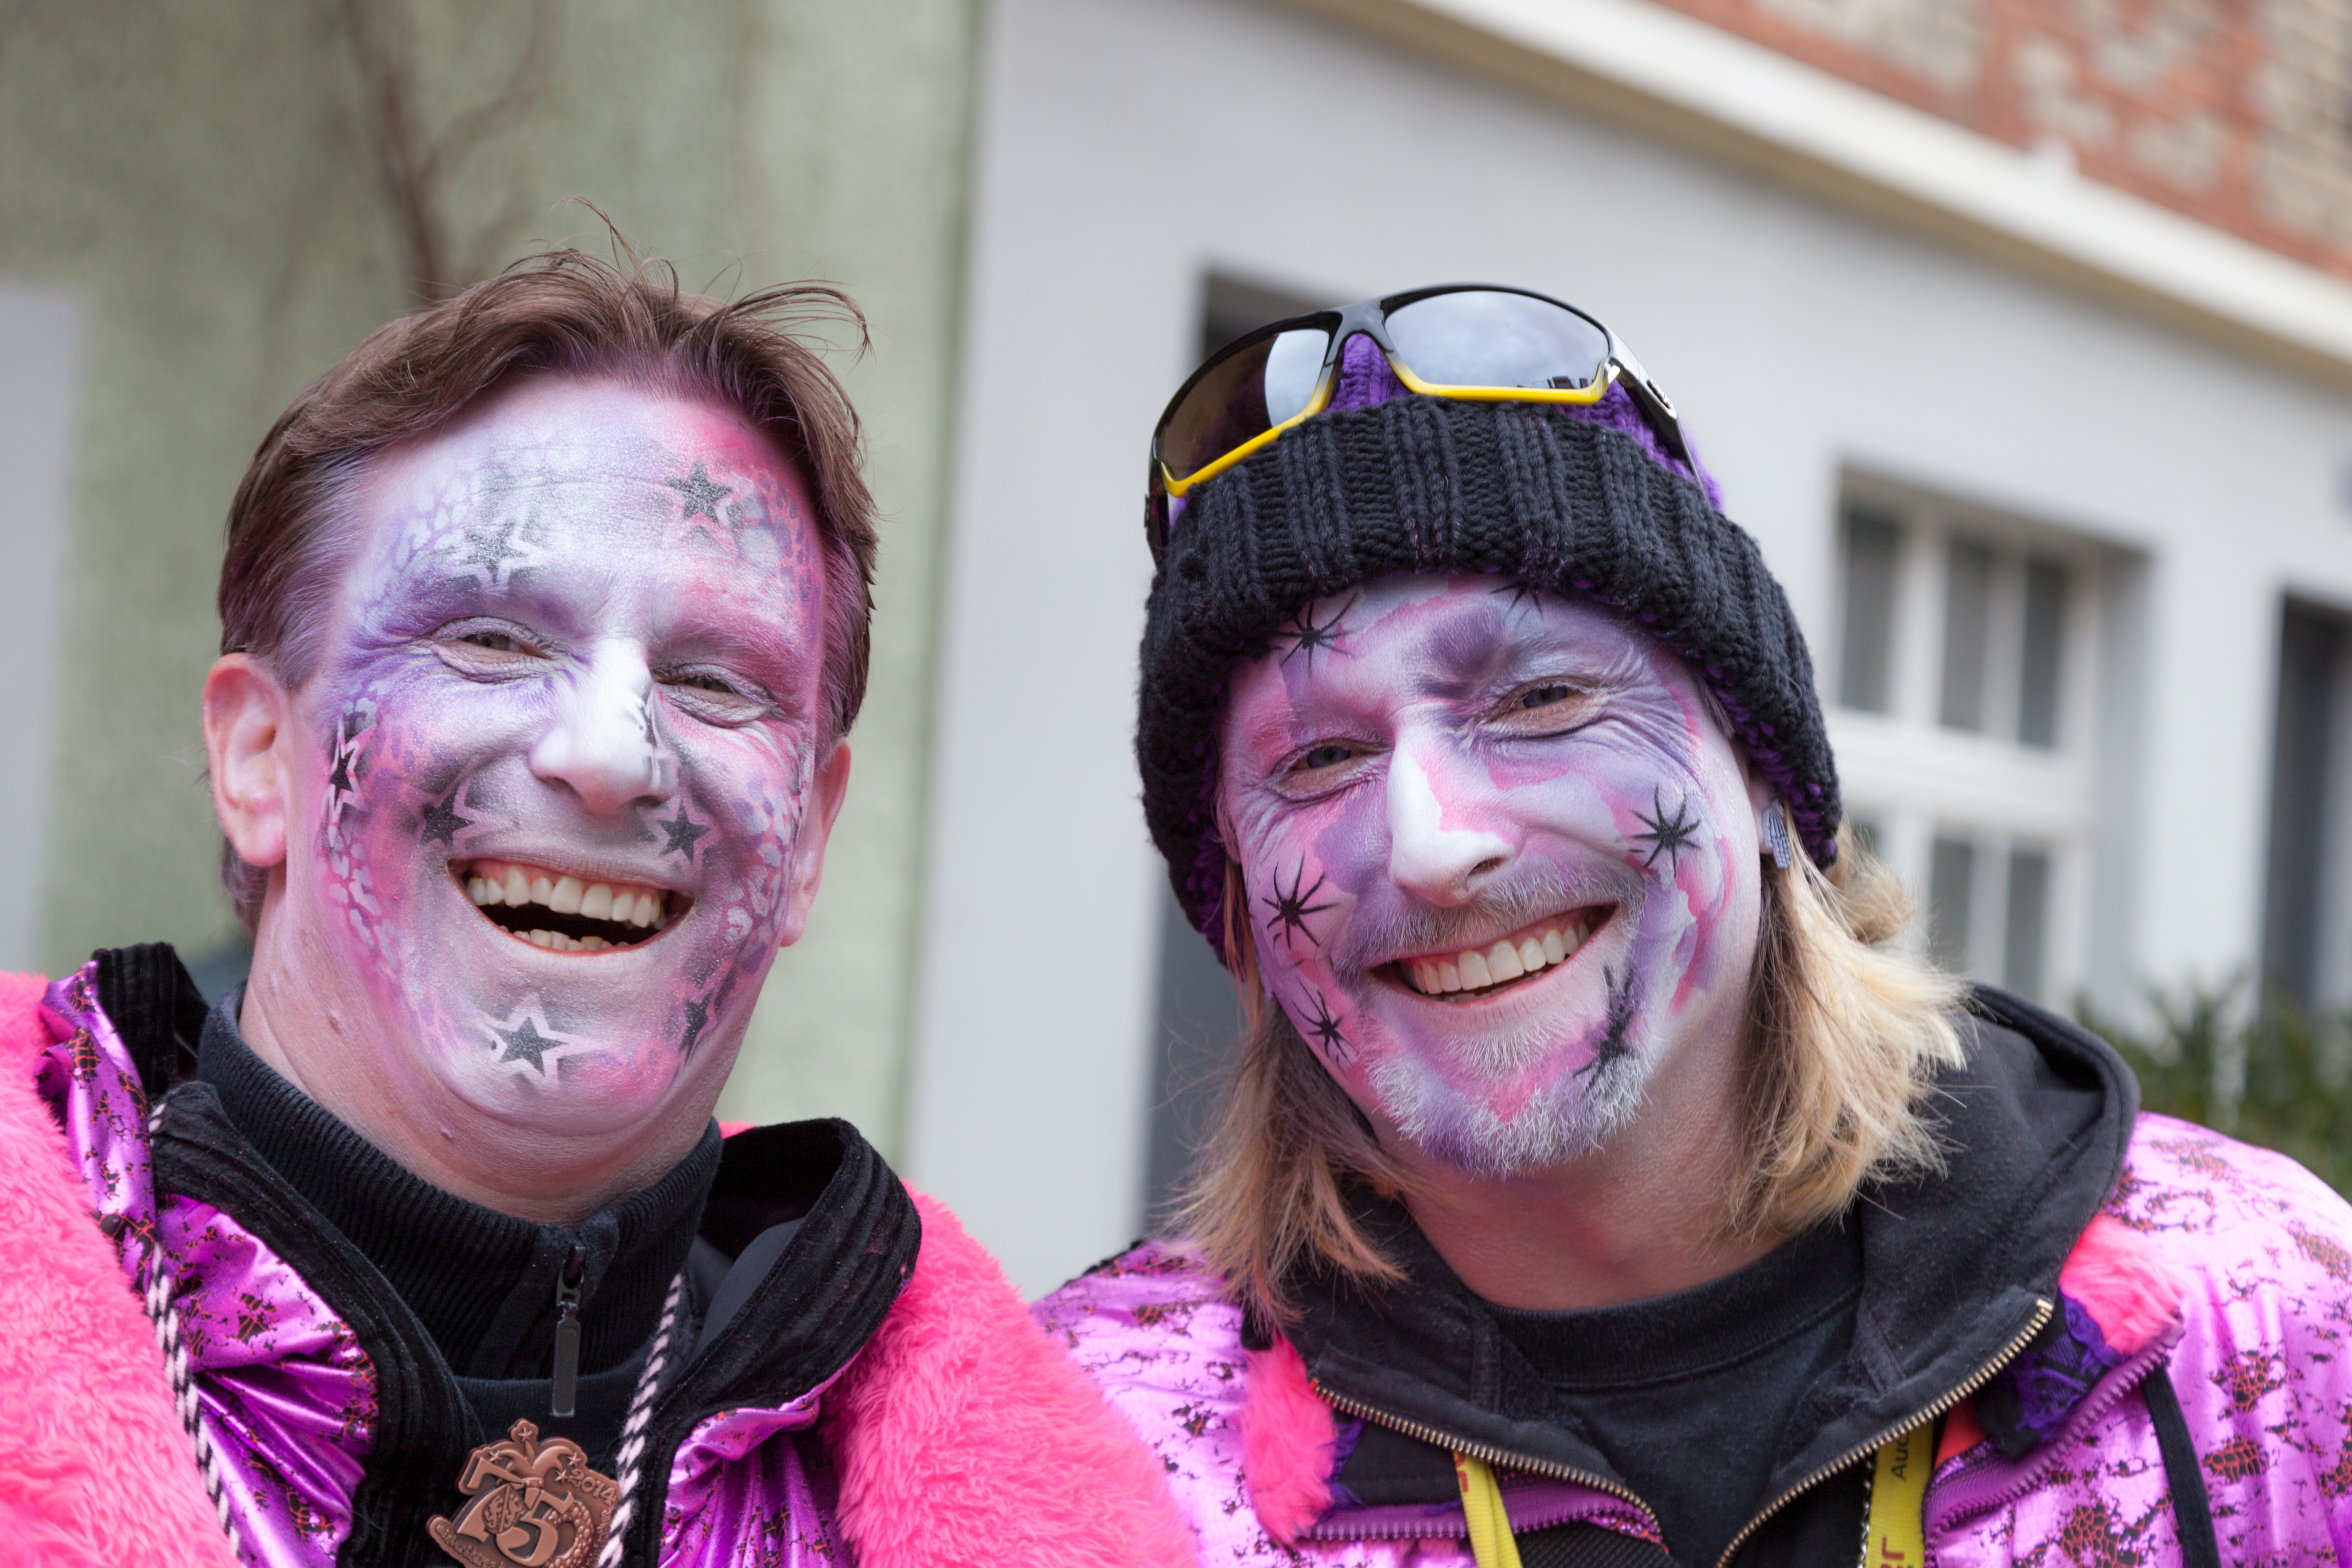 Colourful happy faces at the Winterthur Carnaval